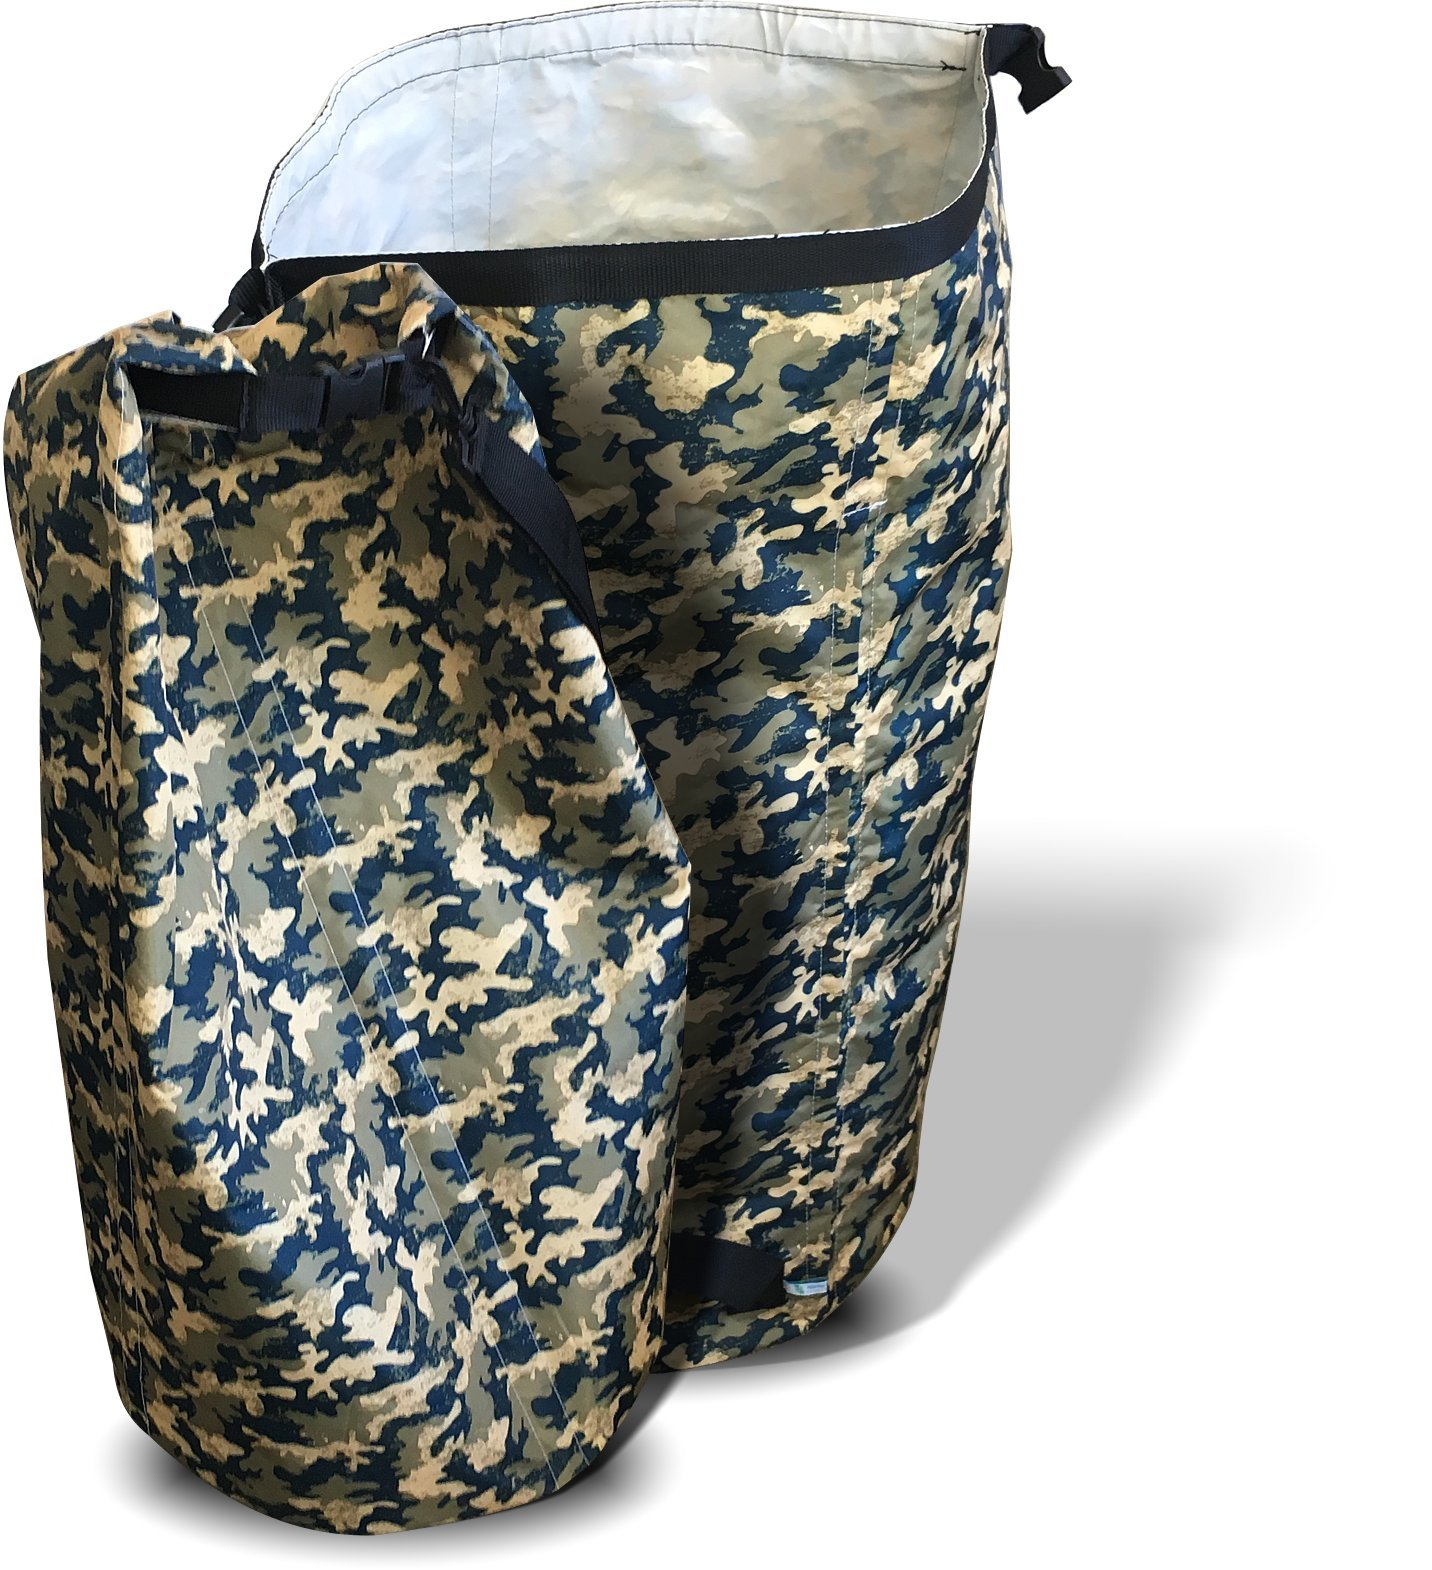 FLASH SALE! Laundry Basket - Collapsible Extra Large Fabric Clothes Hamper, Strong Shoulder Strap So It's Easy To Carry To The Laundromat, Great Student Gift - These Are Dorm Room Essentials For Guys!